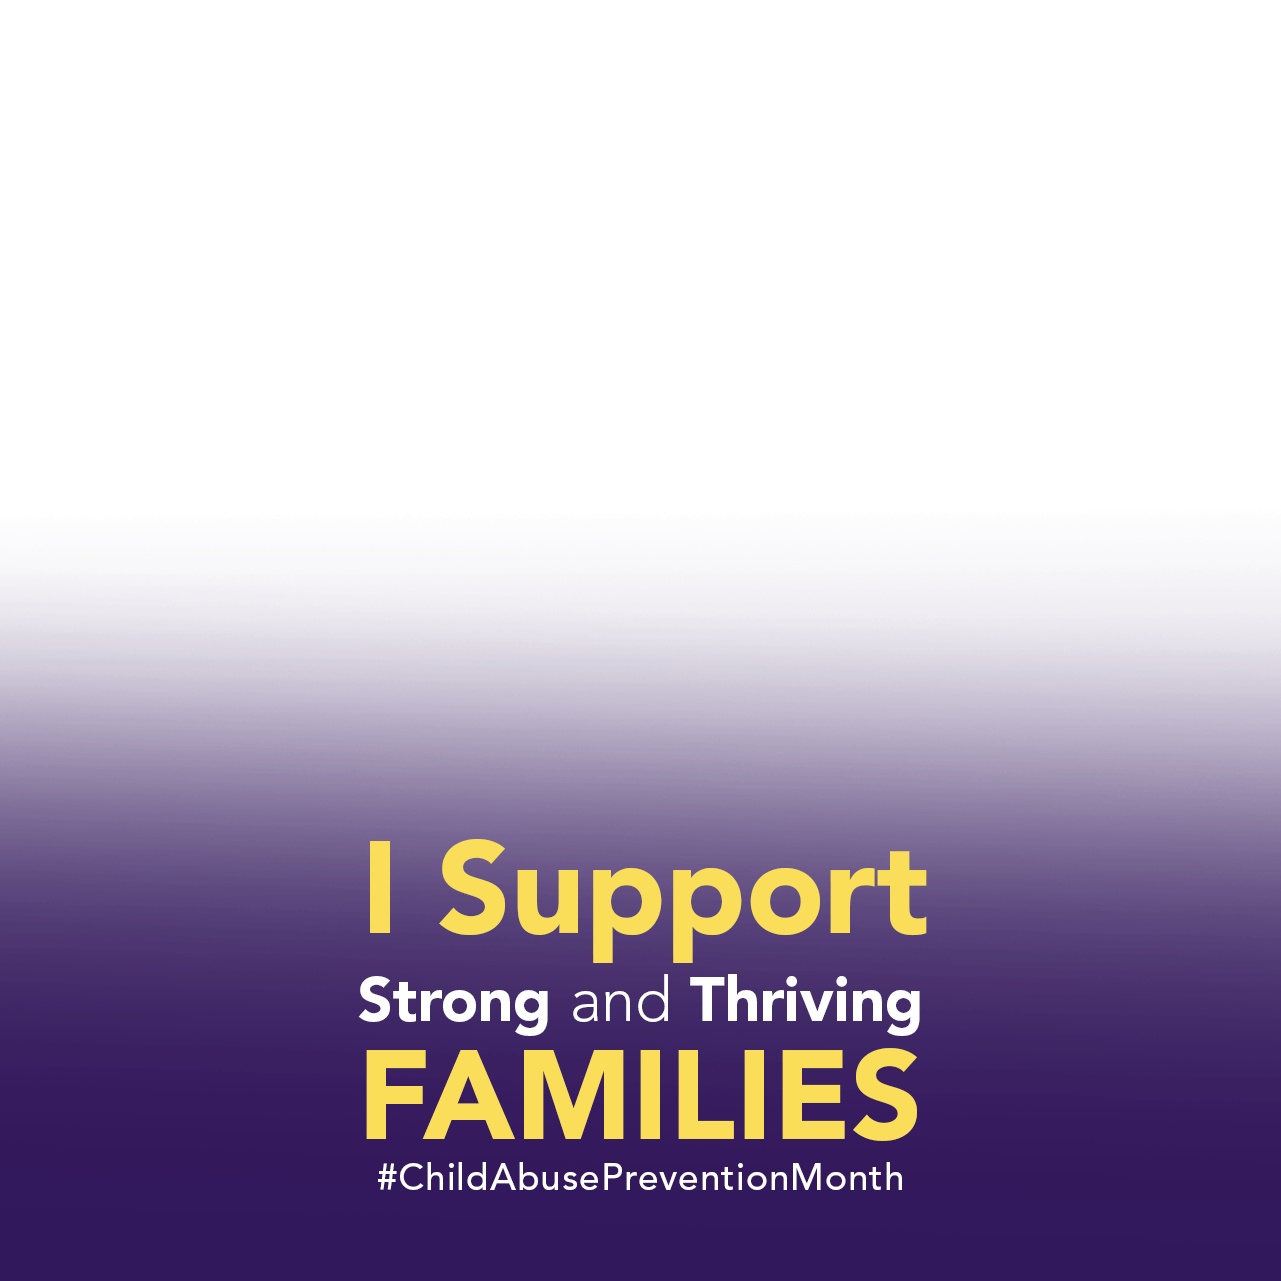 1281px by 1281 px Facebook profile frame with I support strong and thriving families text